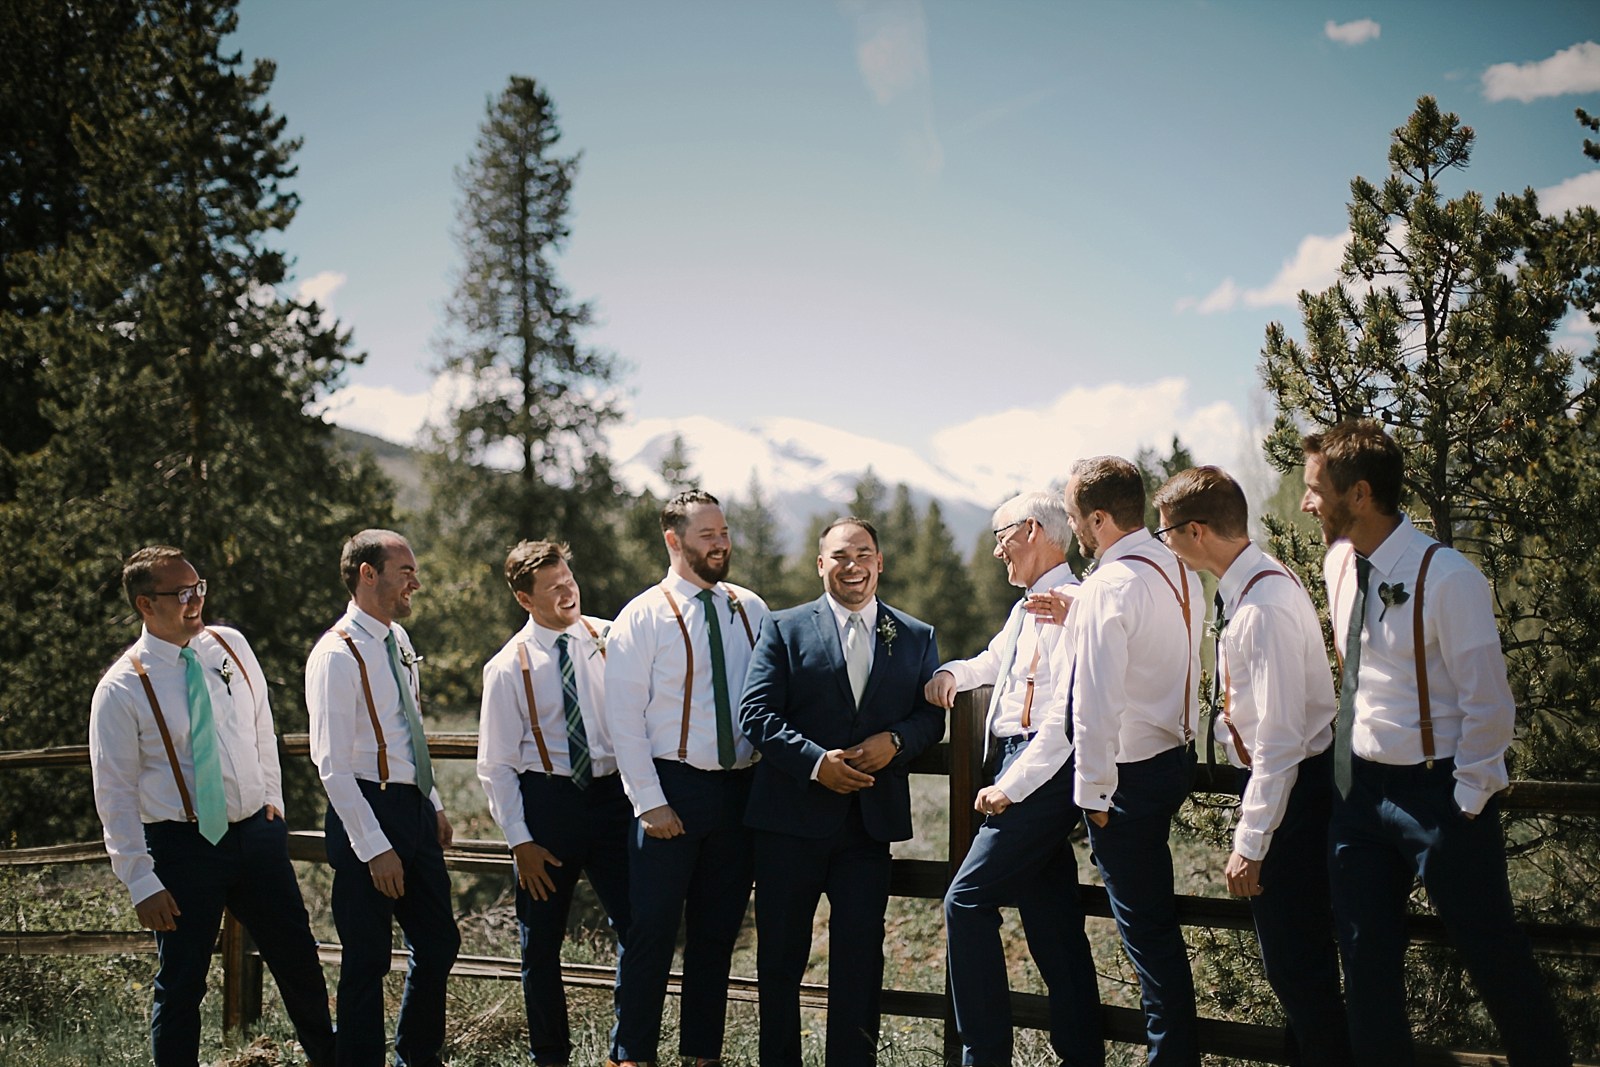 groomsmen at agape outpost, bridal party, breckenridge colorado wedding, breckenridge colorado wedding photographer, the church at agape outpost wedding, agape outpost wedding photographer